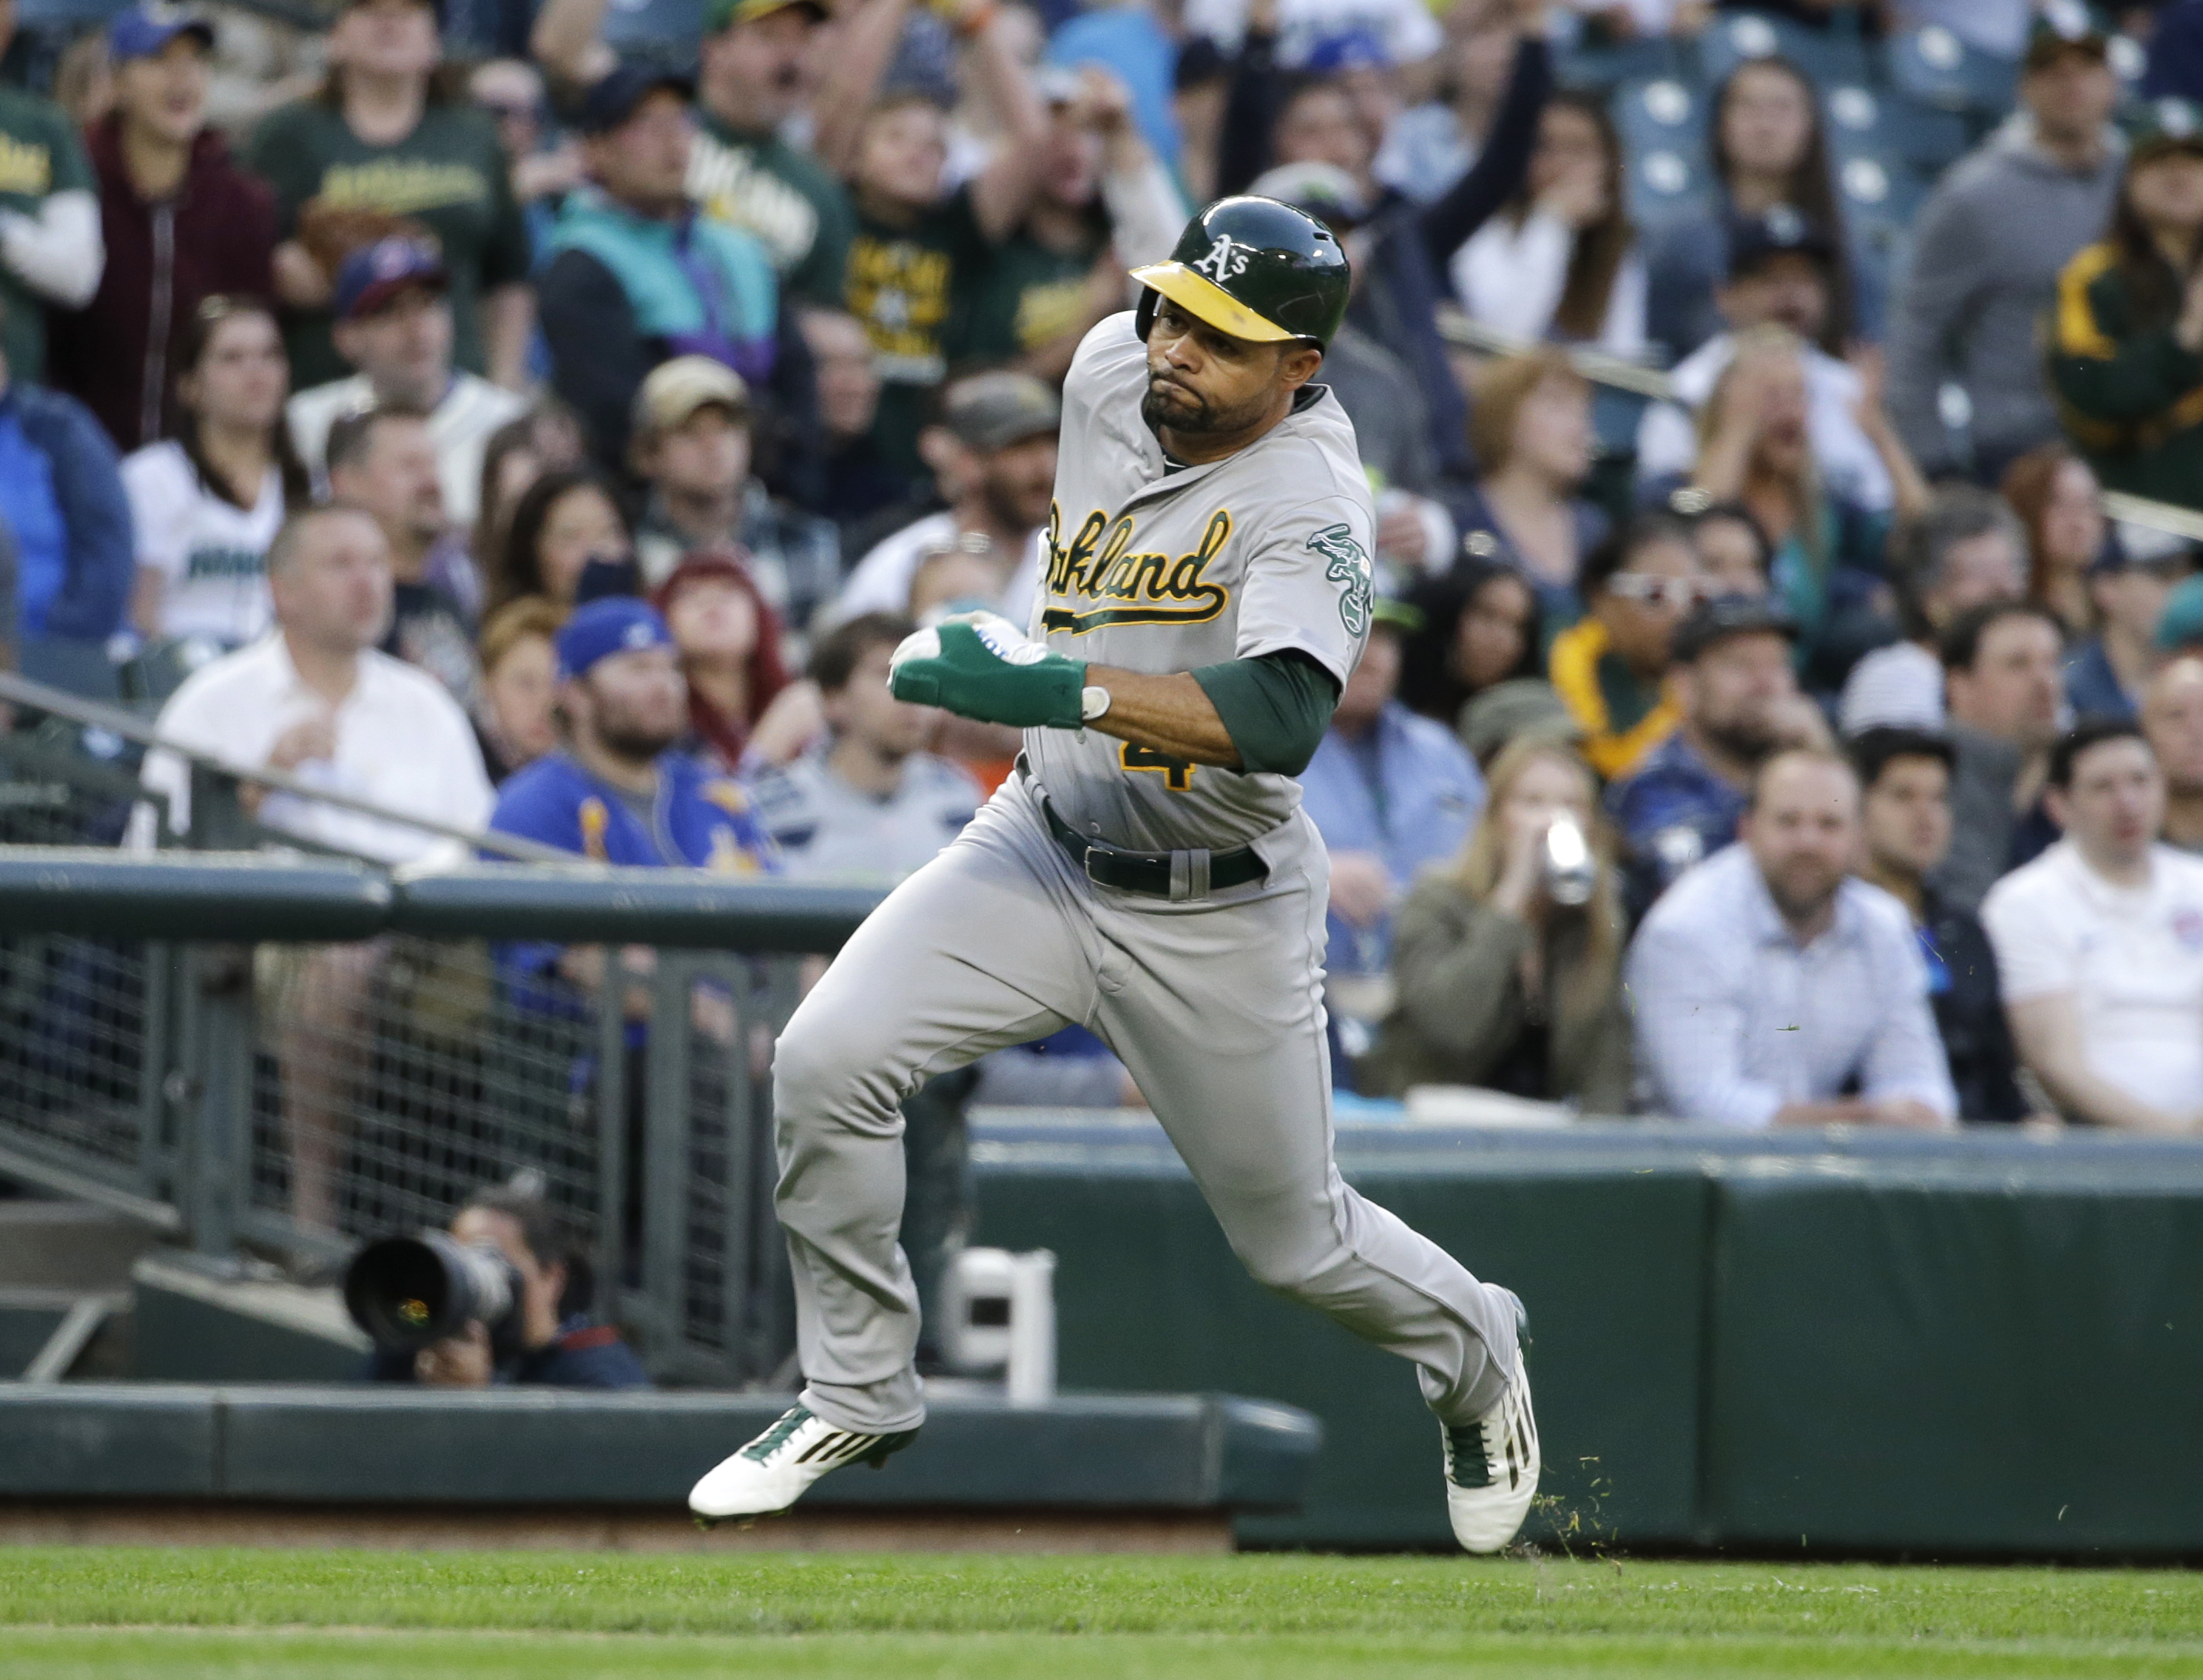 Oakland Athletics' Coco Crisp in action against the Seattle Mariners in a baseball game Friday, May 8, 2015, in Seattle. (AP Photo/Elaine Thompson)